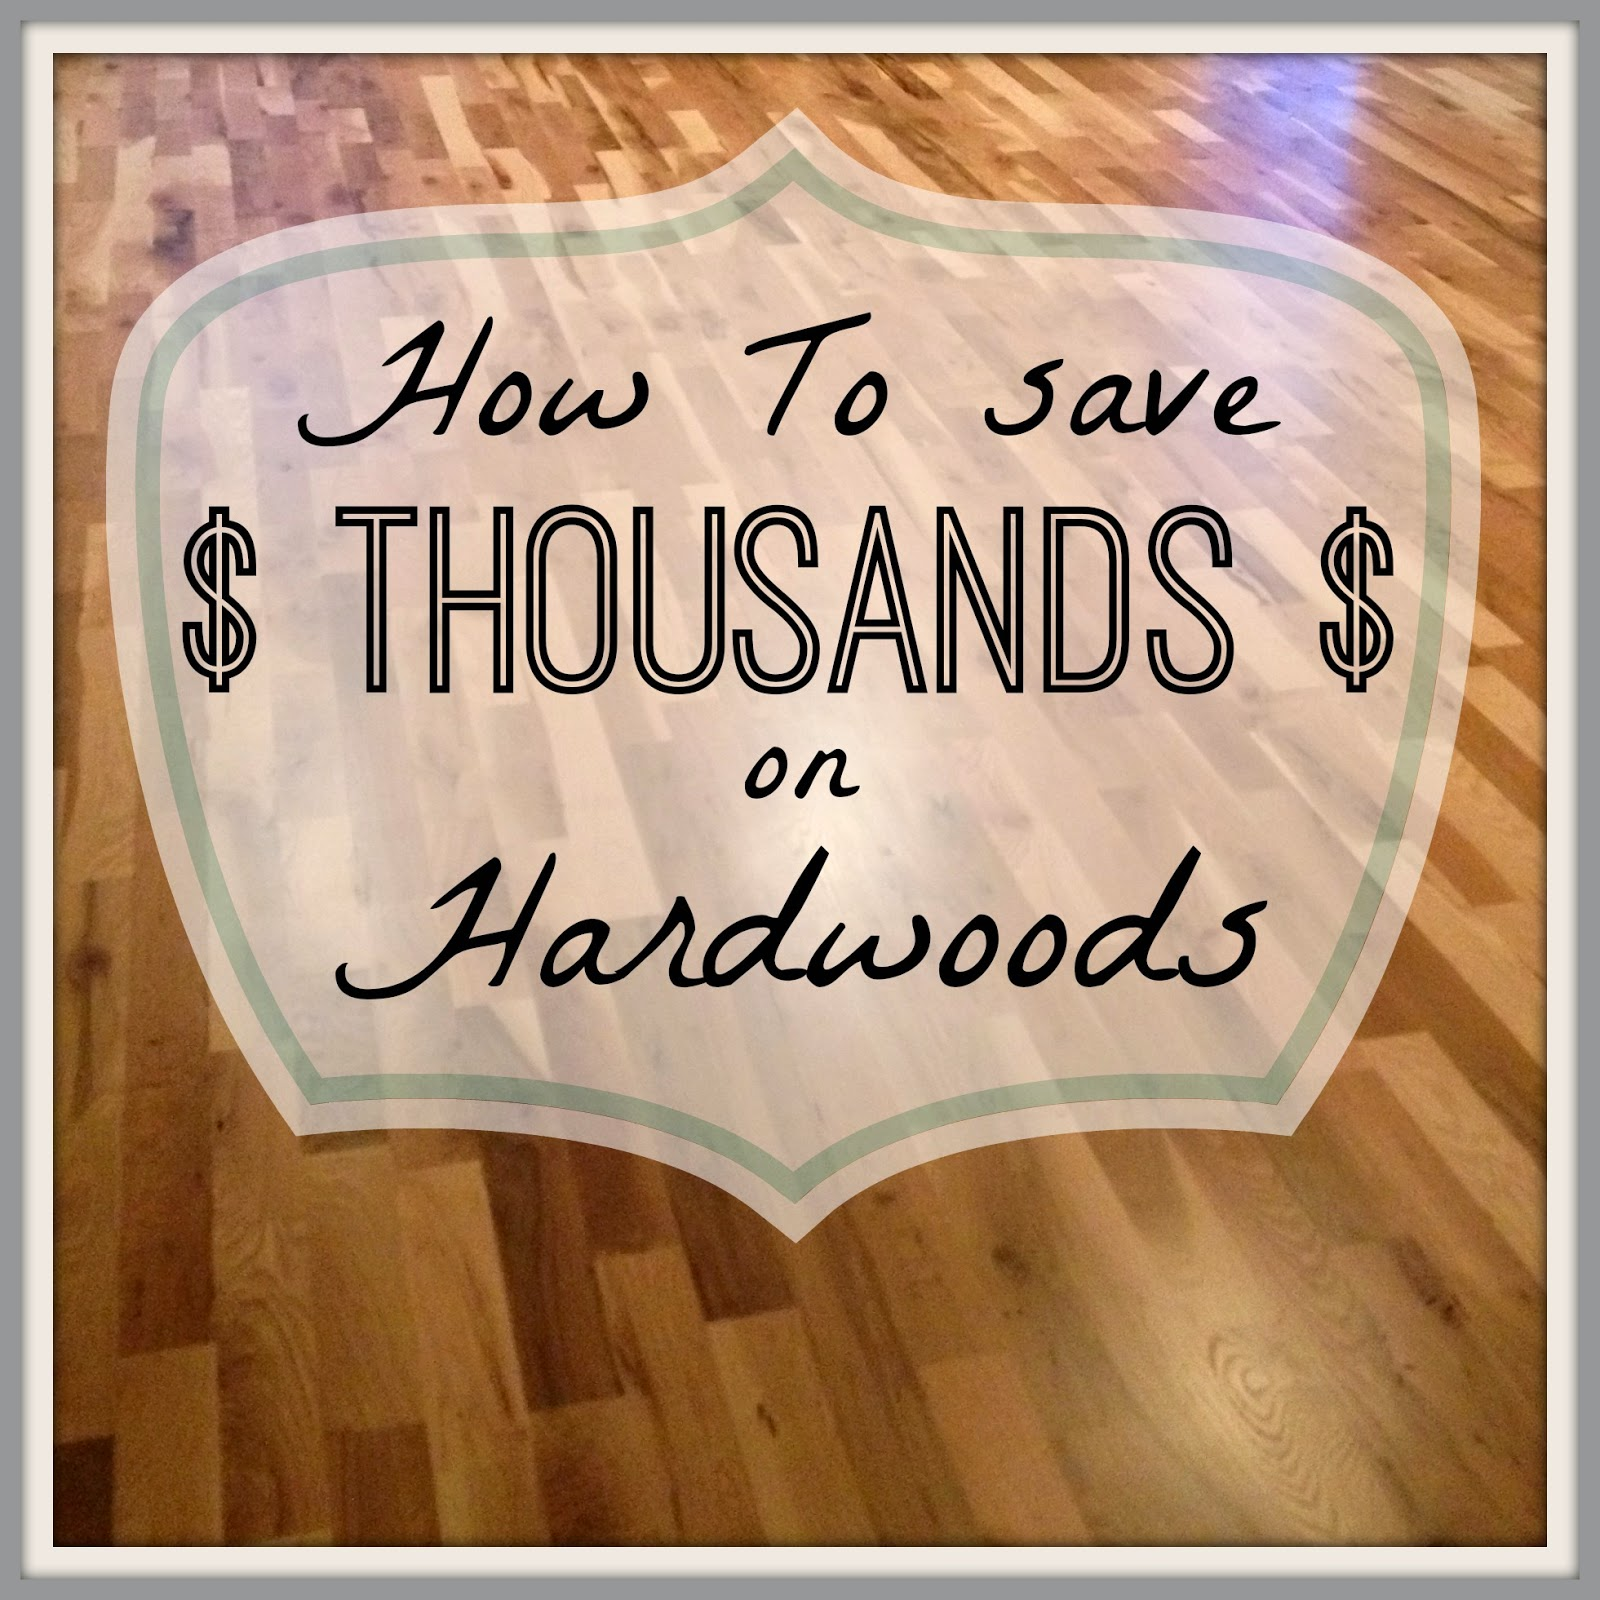 Saving Thousands on Hardwood flooring to get the floor of your dreams!